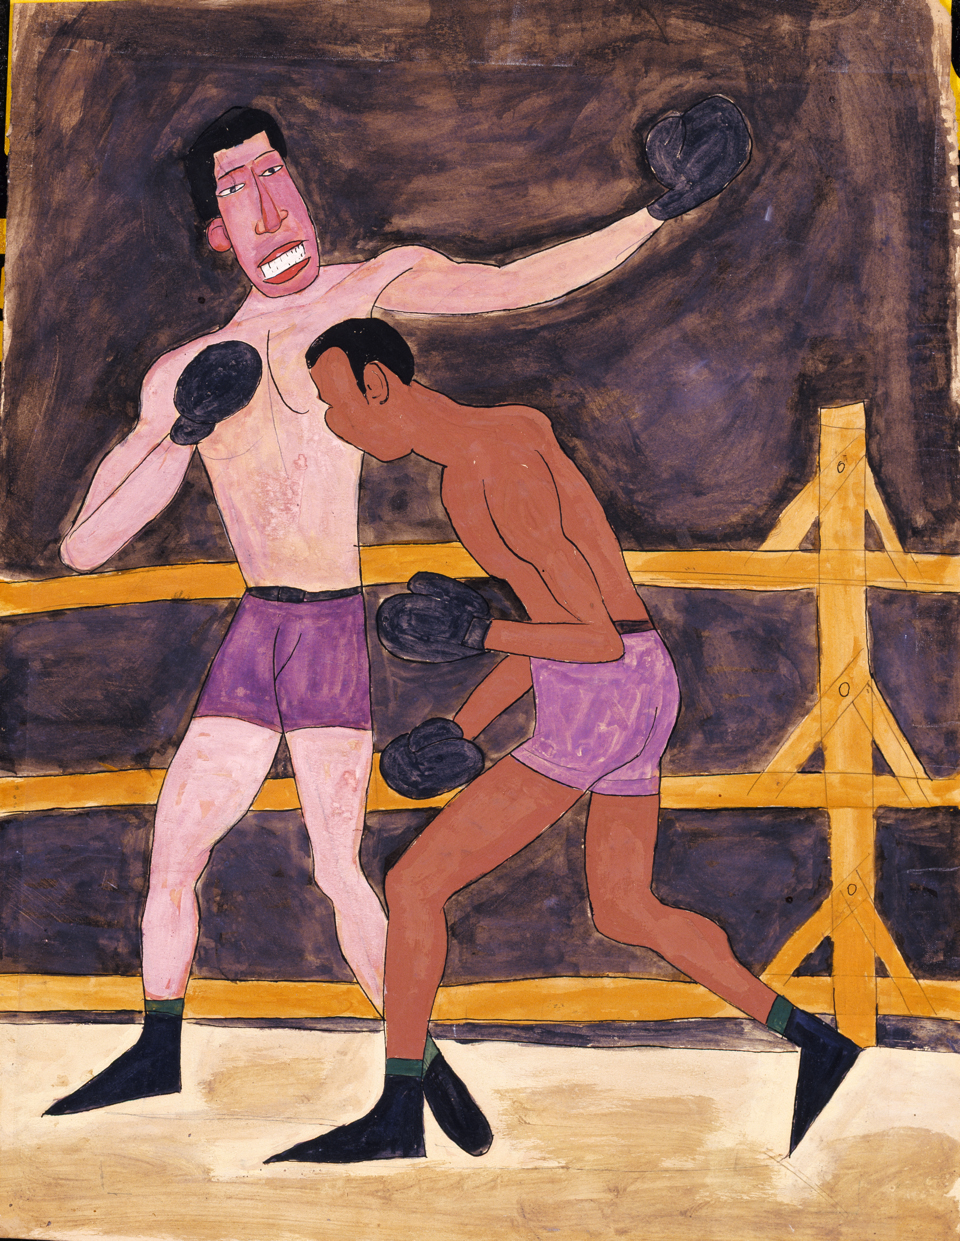 William H. Johnson, Joe Louis and Unidentified Boxer, c.1939-42, tempera, pen and ink on paper, c. 20.5 × 15.3 in.